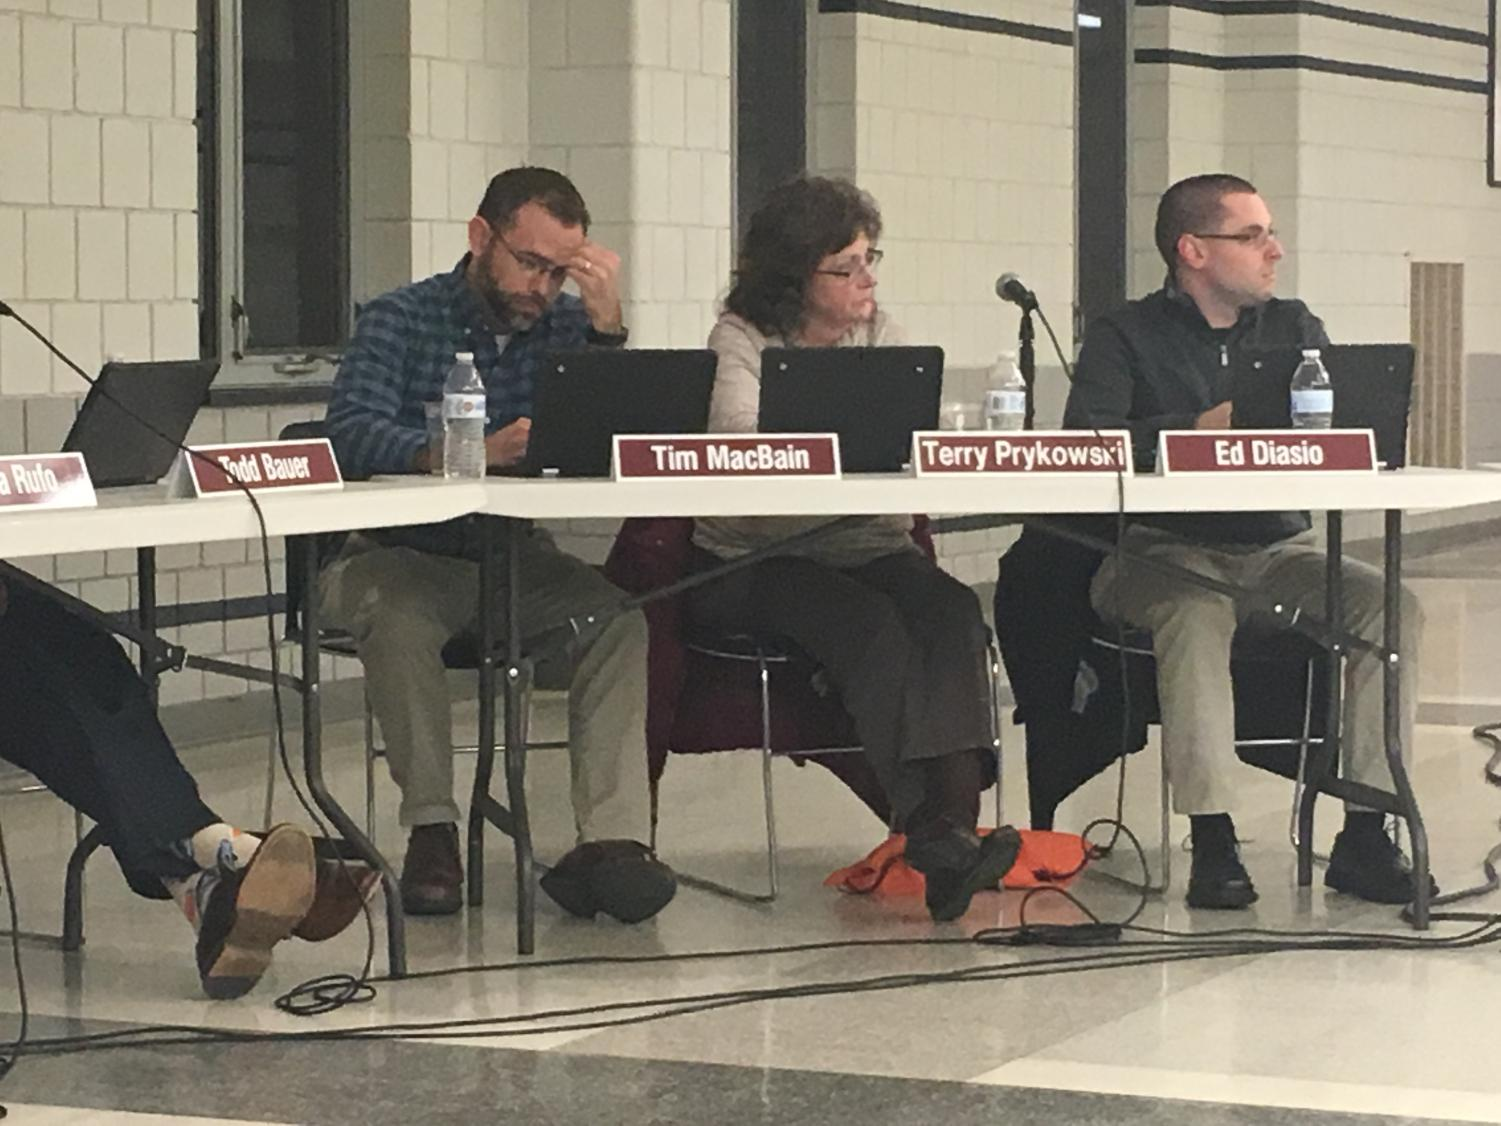 NPSB: The Board discussed facility needs and the benefits of moving 9th grade to the high school and 6th grade to the middle schools.